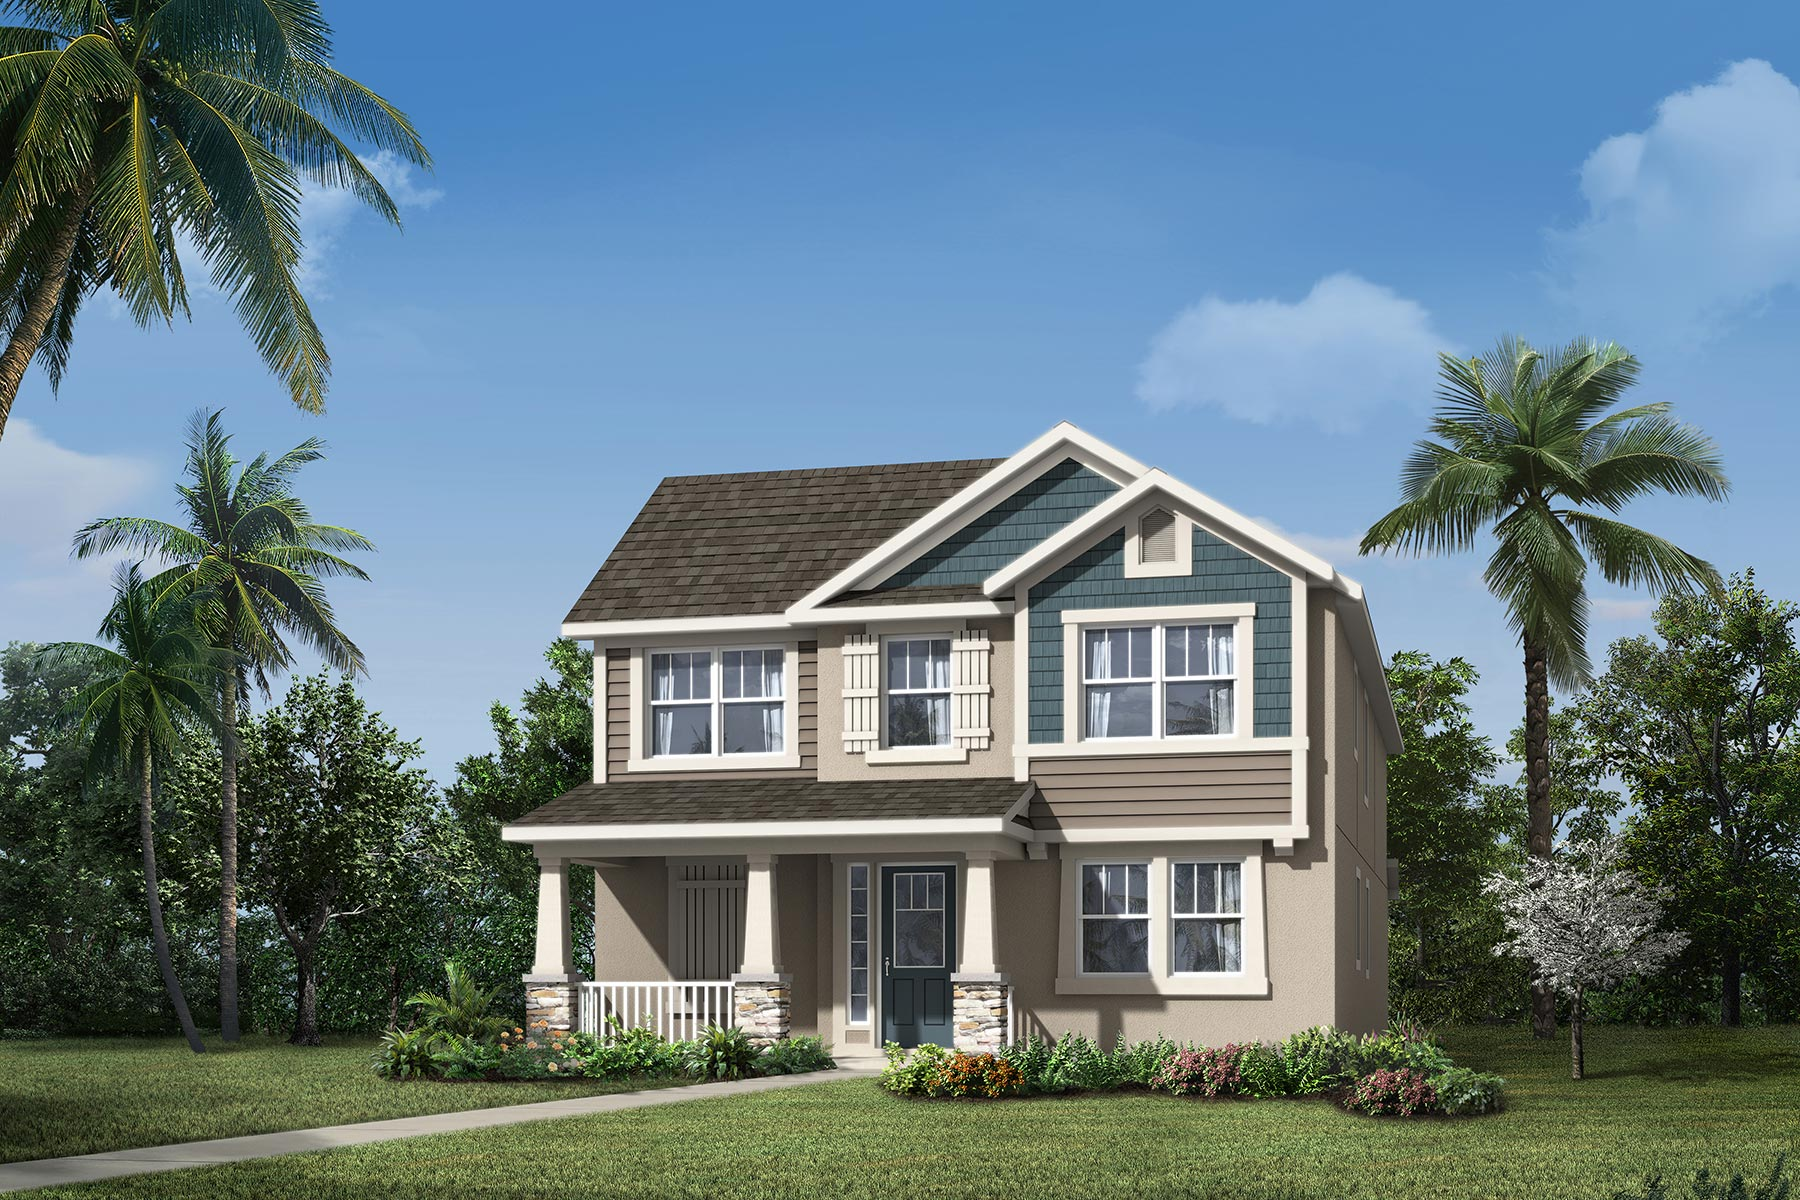 Fremont Plan Elevation Front at Tohoqua in Kissimmee Florida by Mattamy Homes